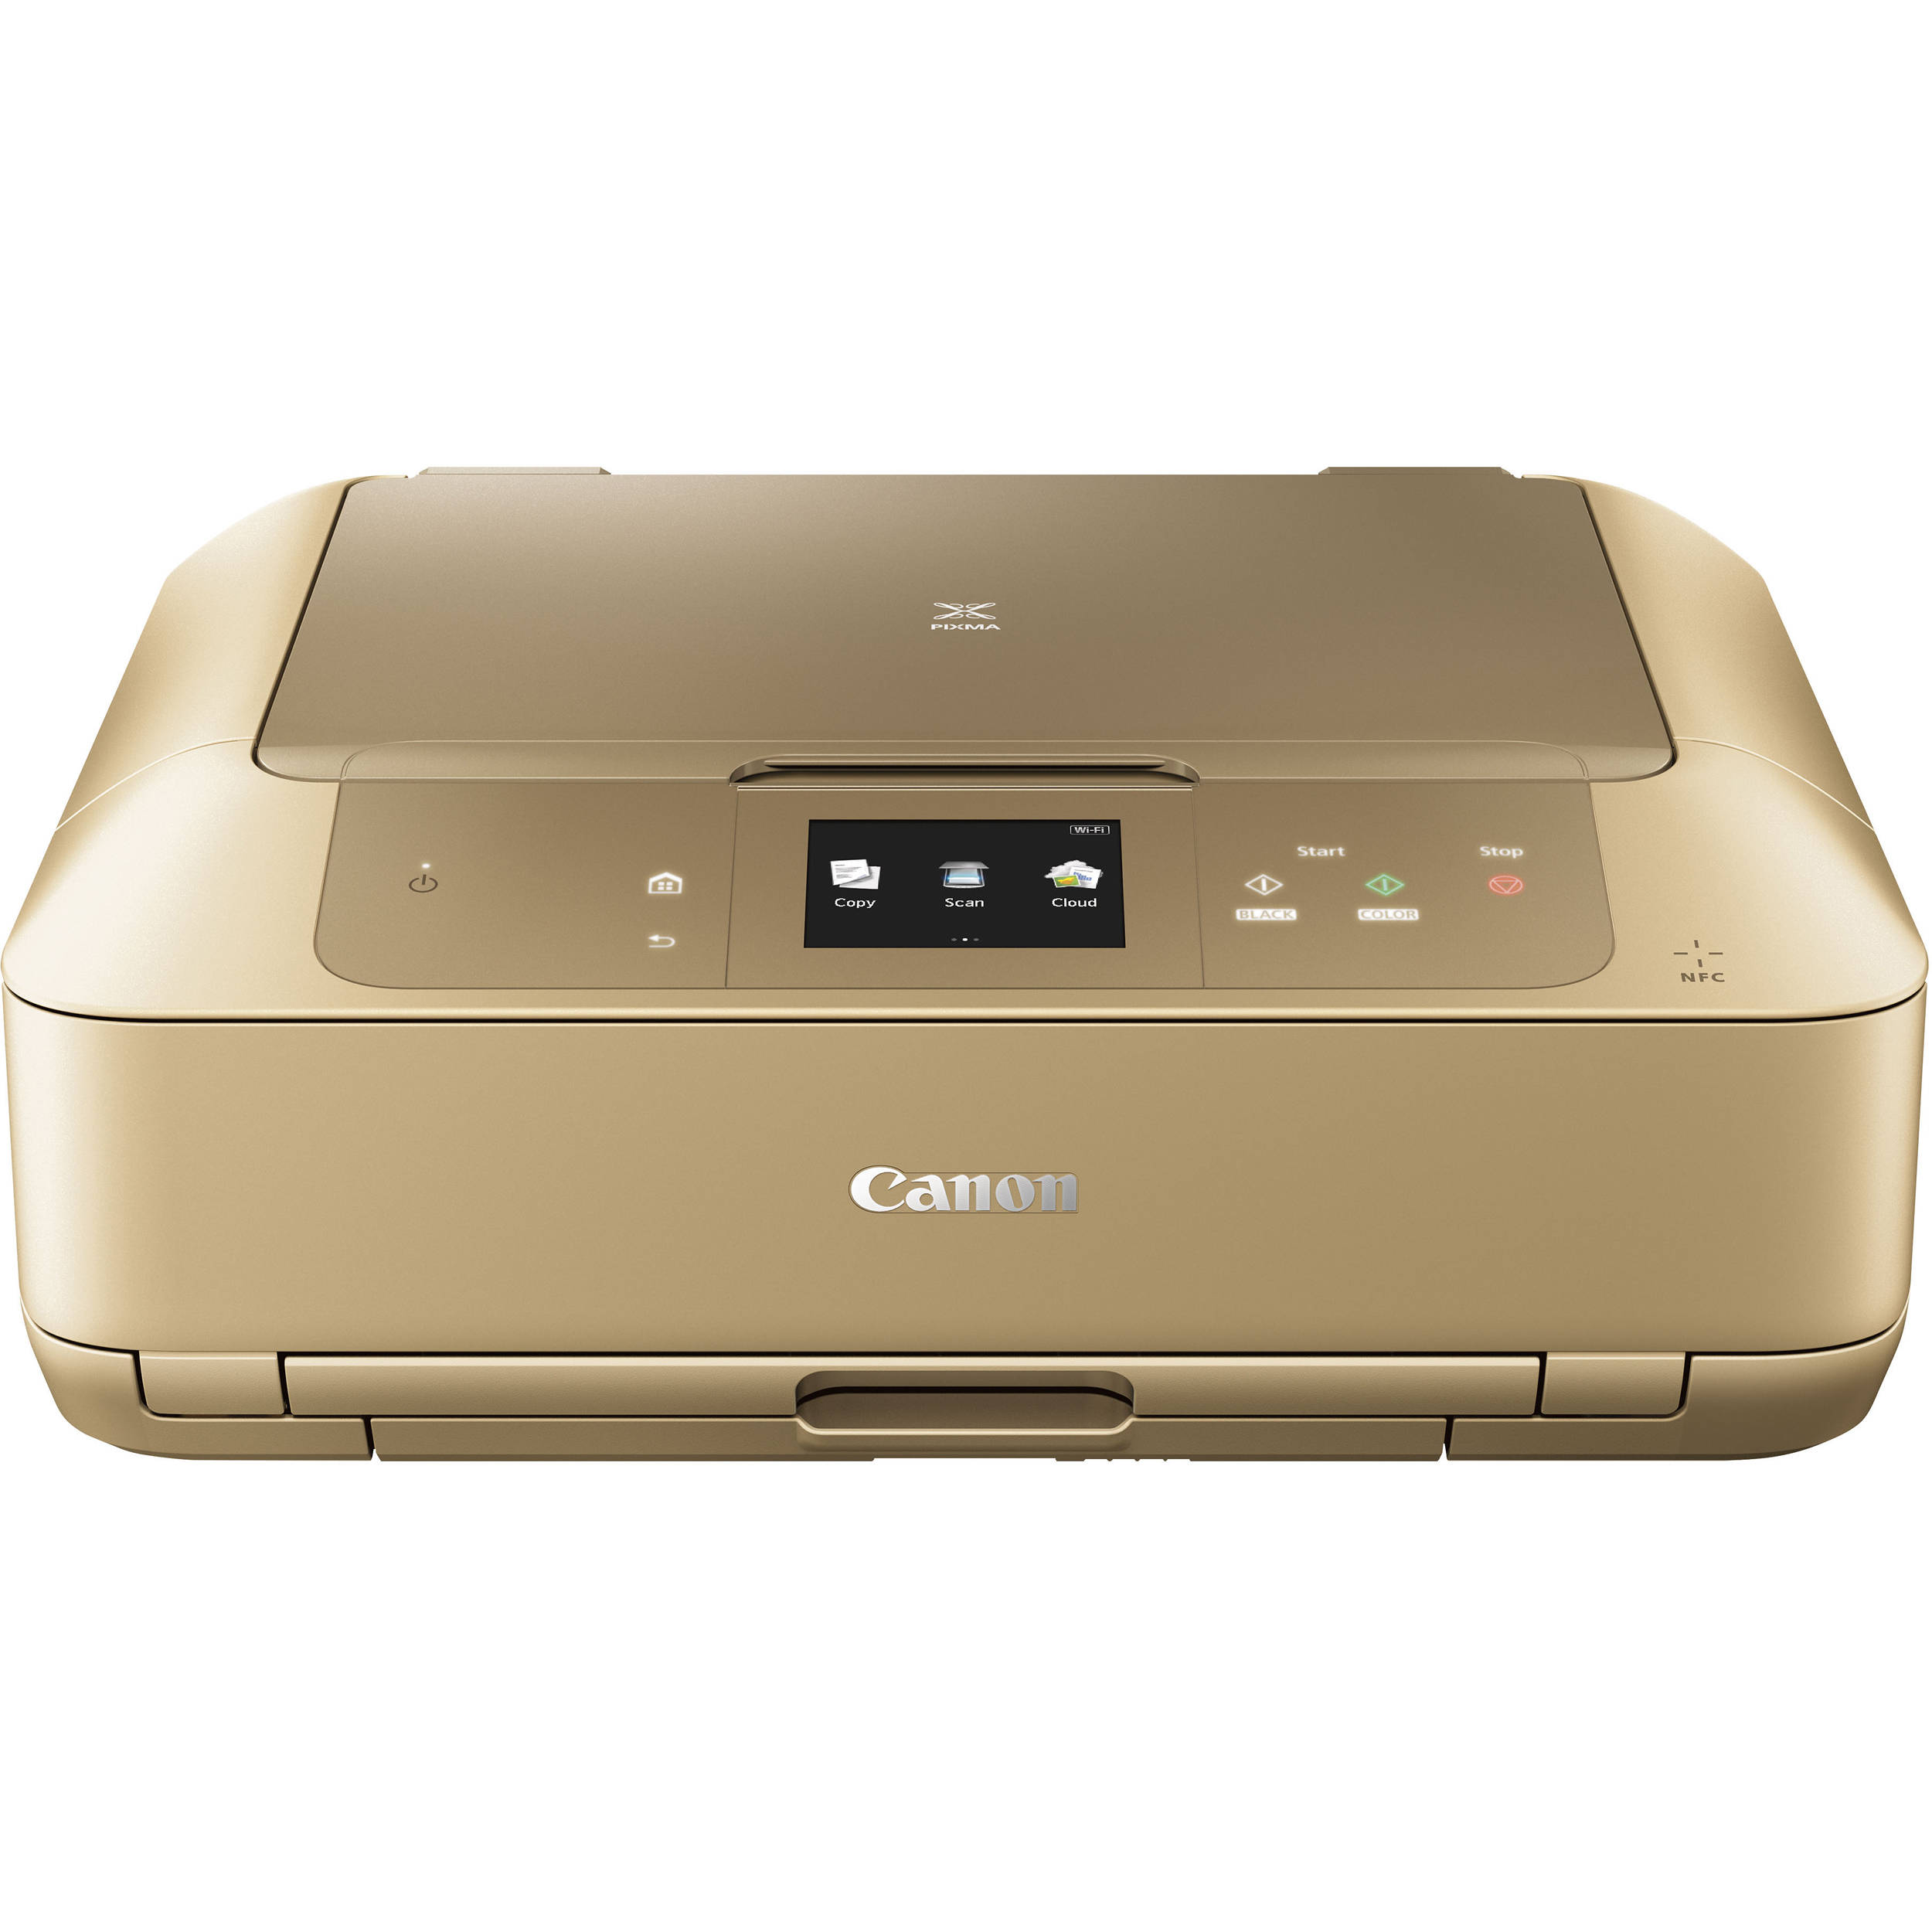 Canon PIXMA MG7720 Wireless All-in-One Inkjet Printer 0596C062AA